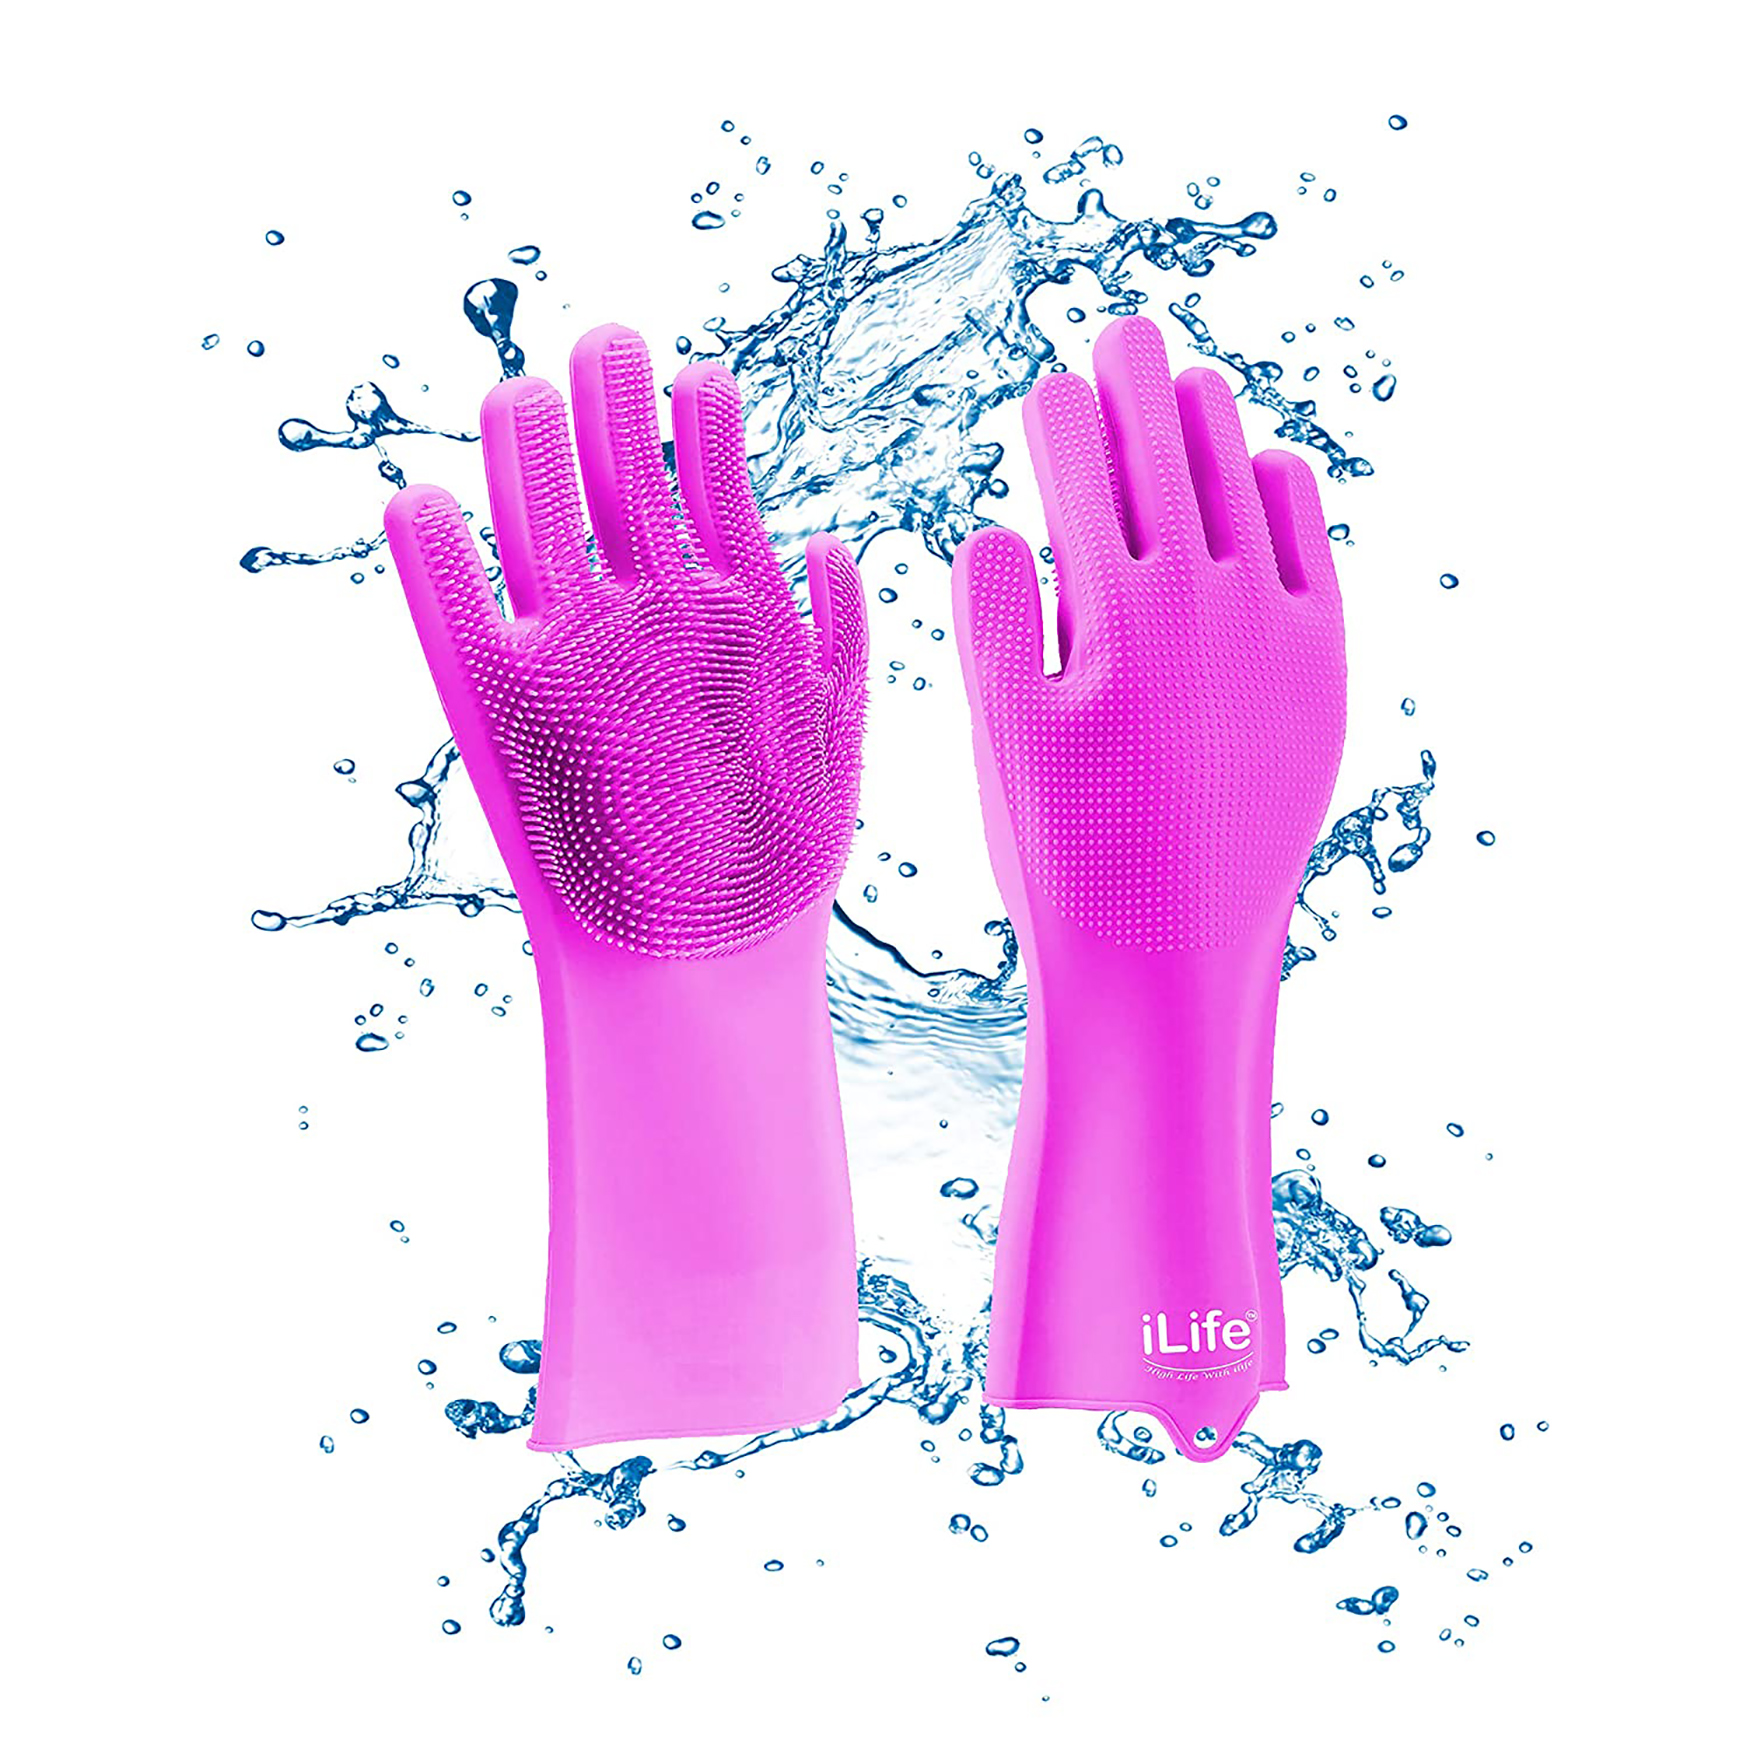 iLife | iLife Scrub Glove 240 grams Thick Multi-use Latex free Silicon scrubber gloves for Dishwashing Pet grooming car cleaning and heat resistance kitchen gloves 1 Pair pink